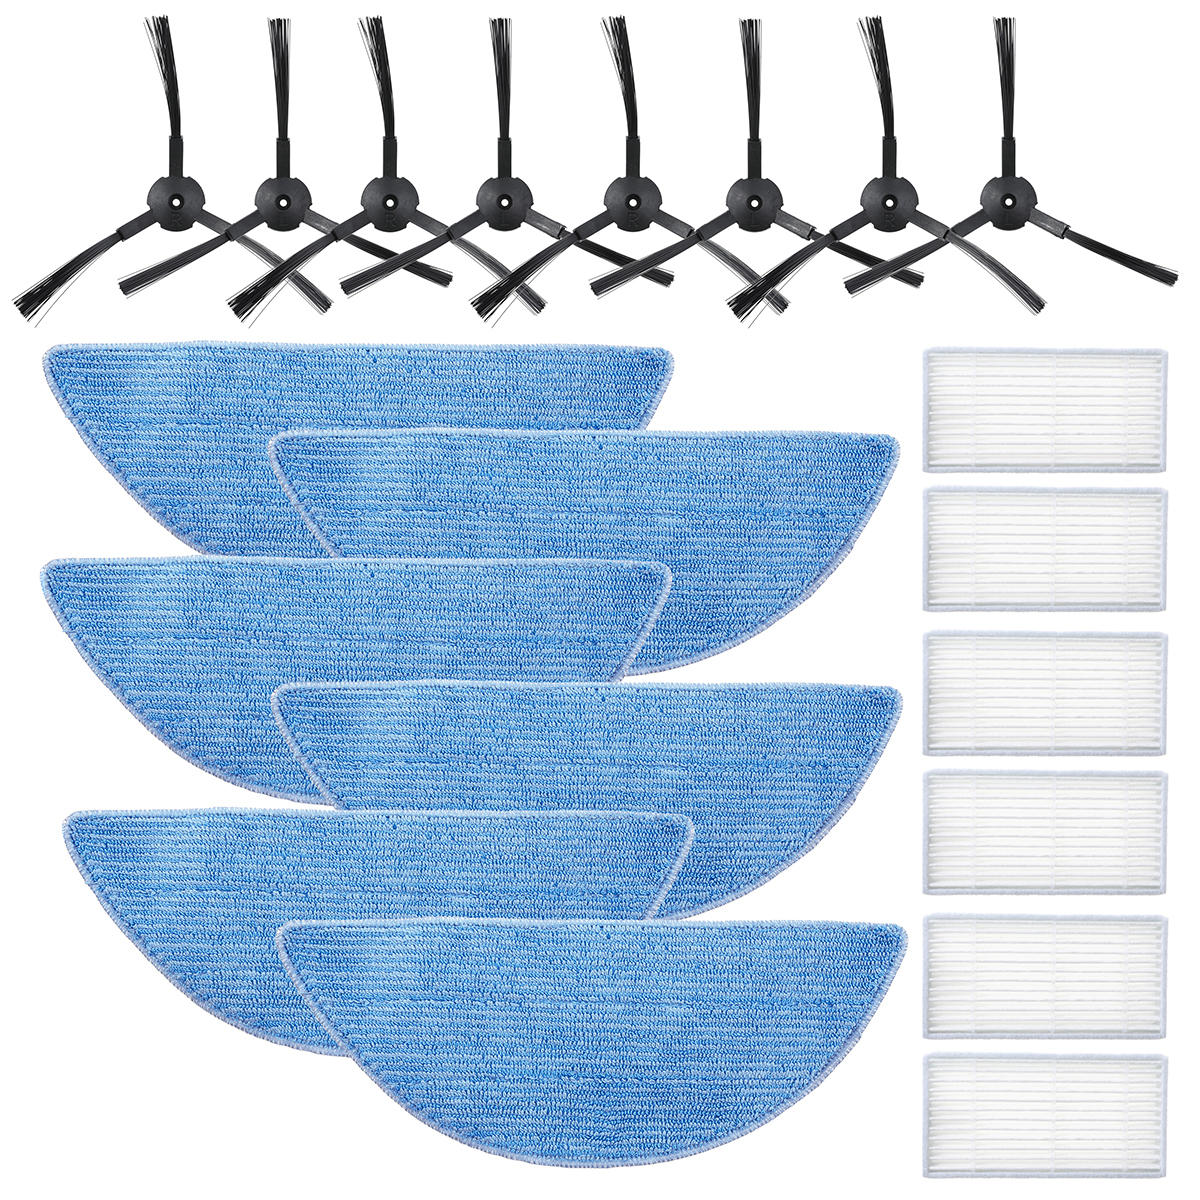 20pcs Replacements for Ilife V5 proX5 V3+V5 V3 Vacuum Cleaner Parts Accessories 8* Side Brushes 6*Filters 6*Rags